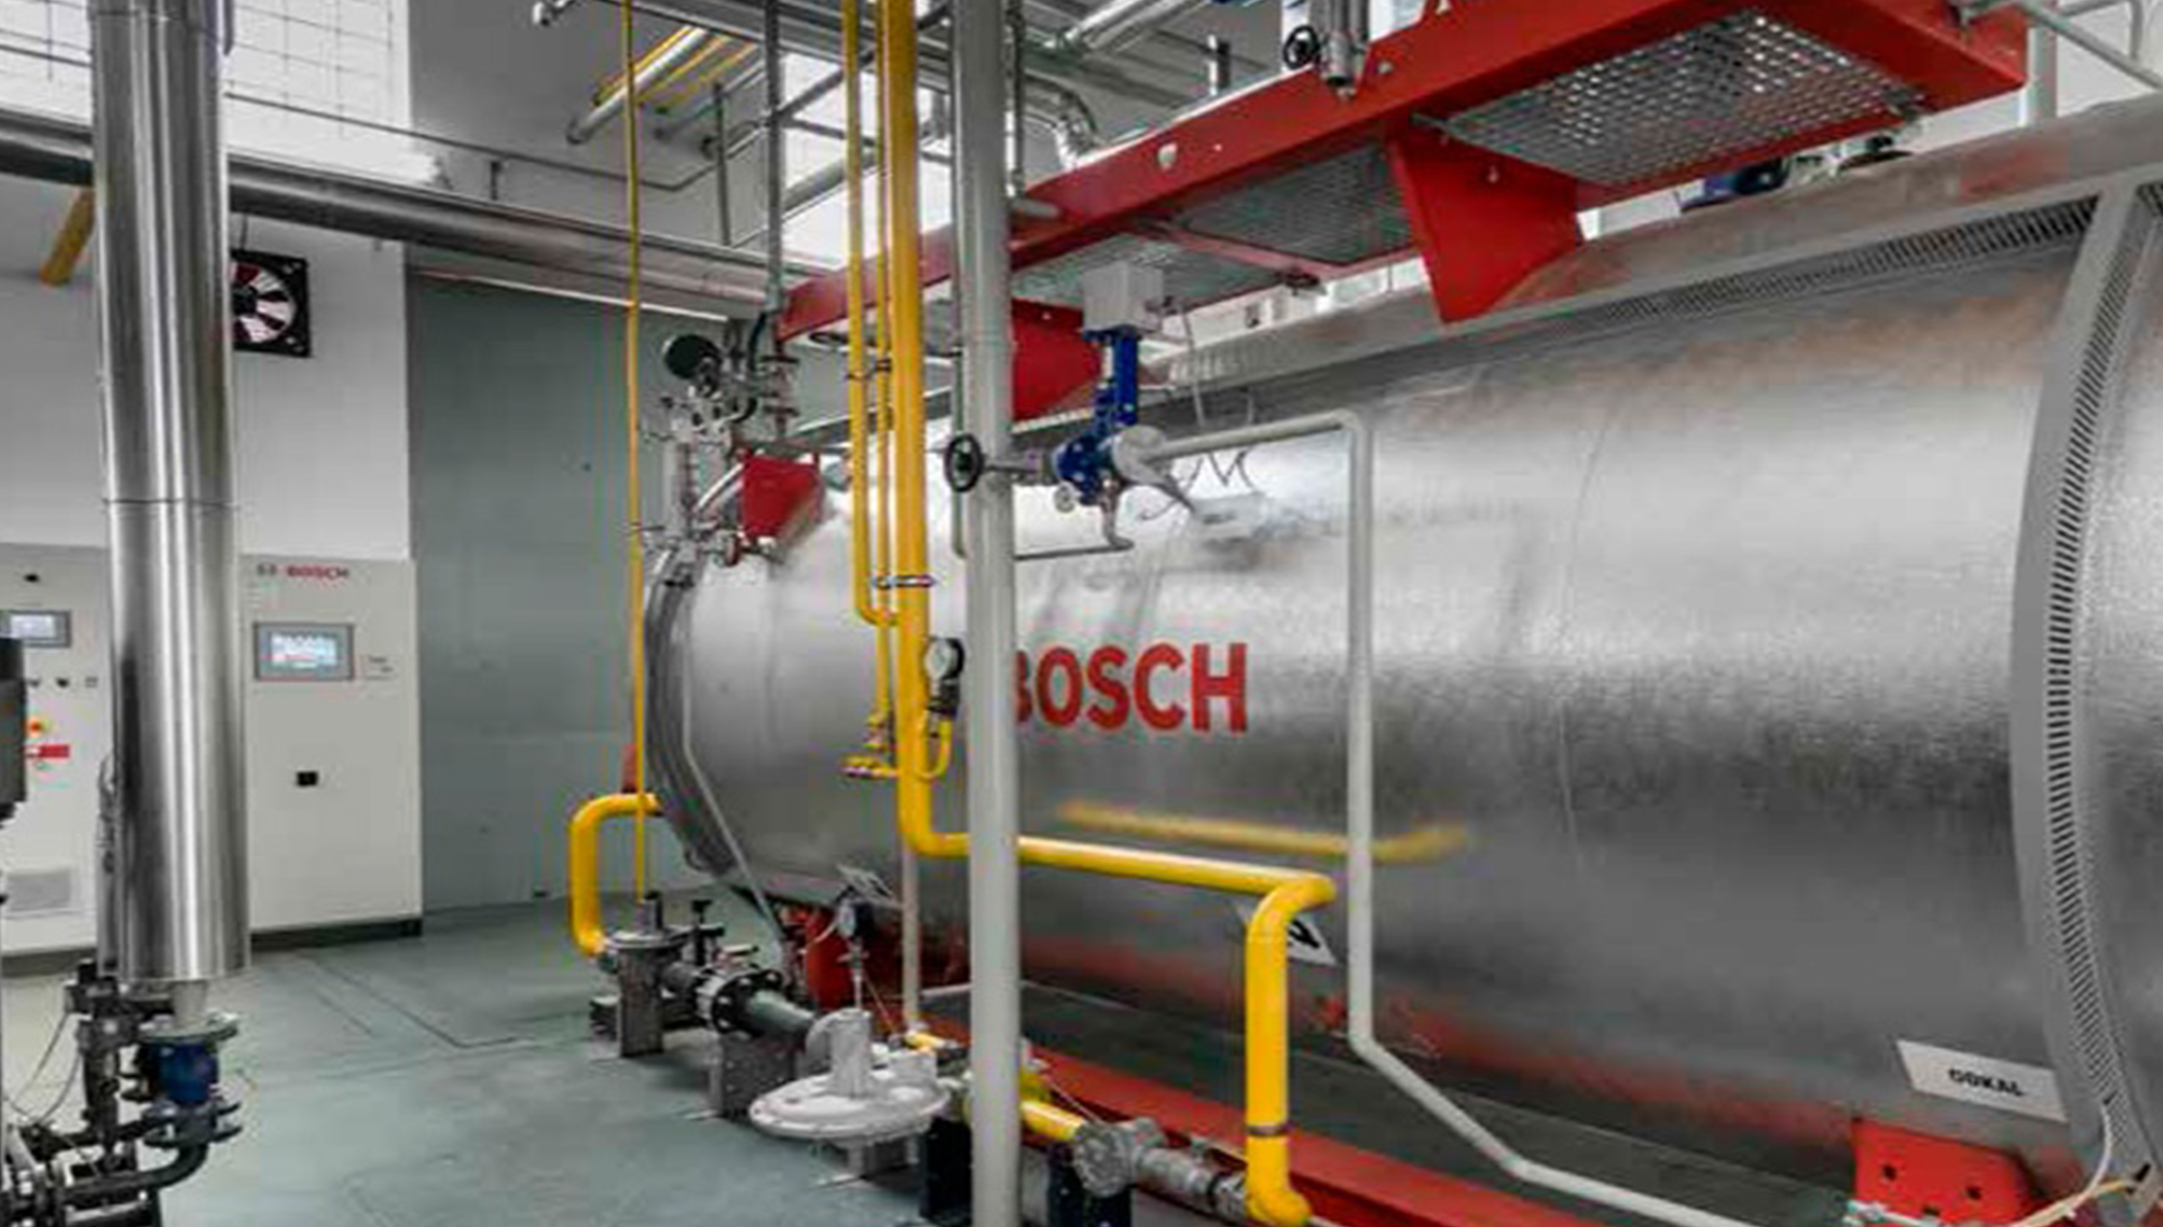 Commercial and industrial boiler solution